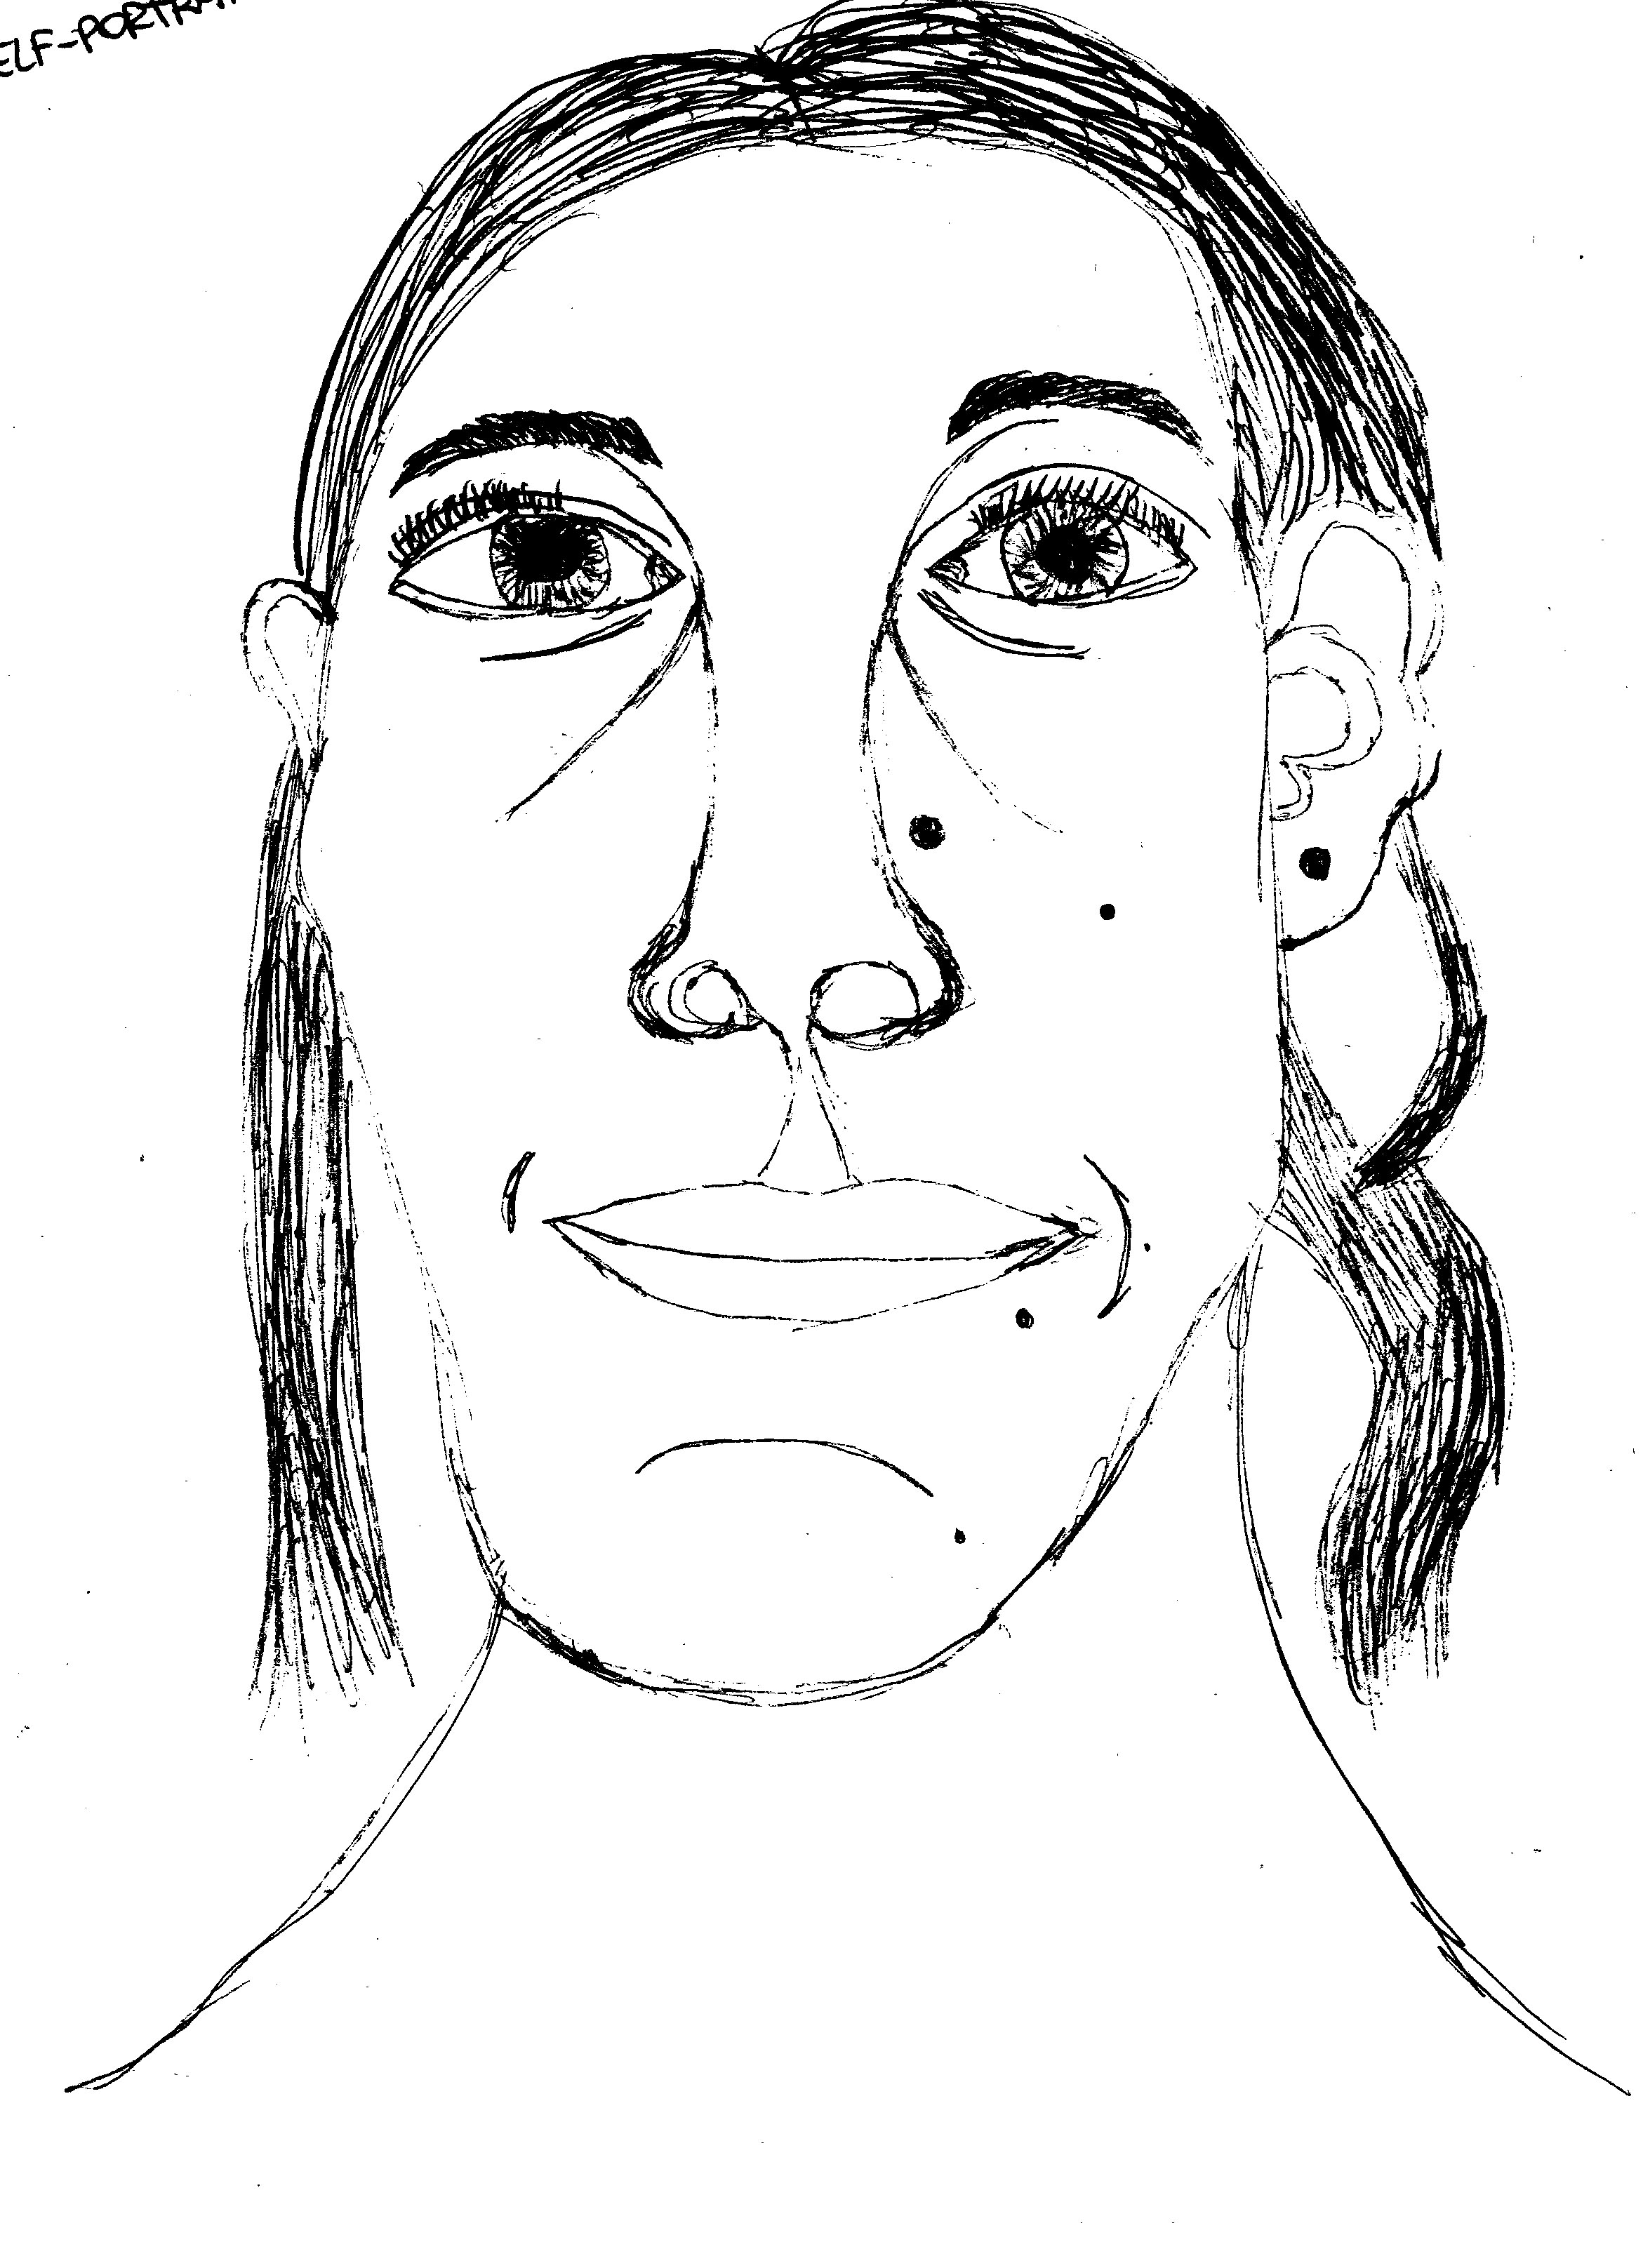 Self-Portrait (white-black values)